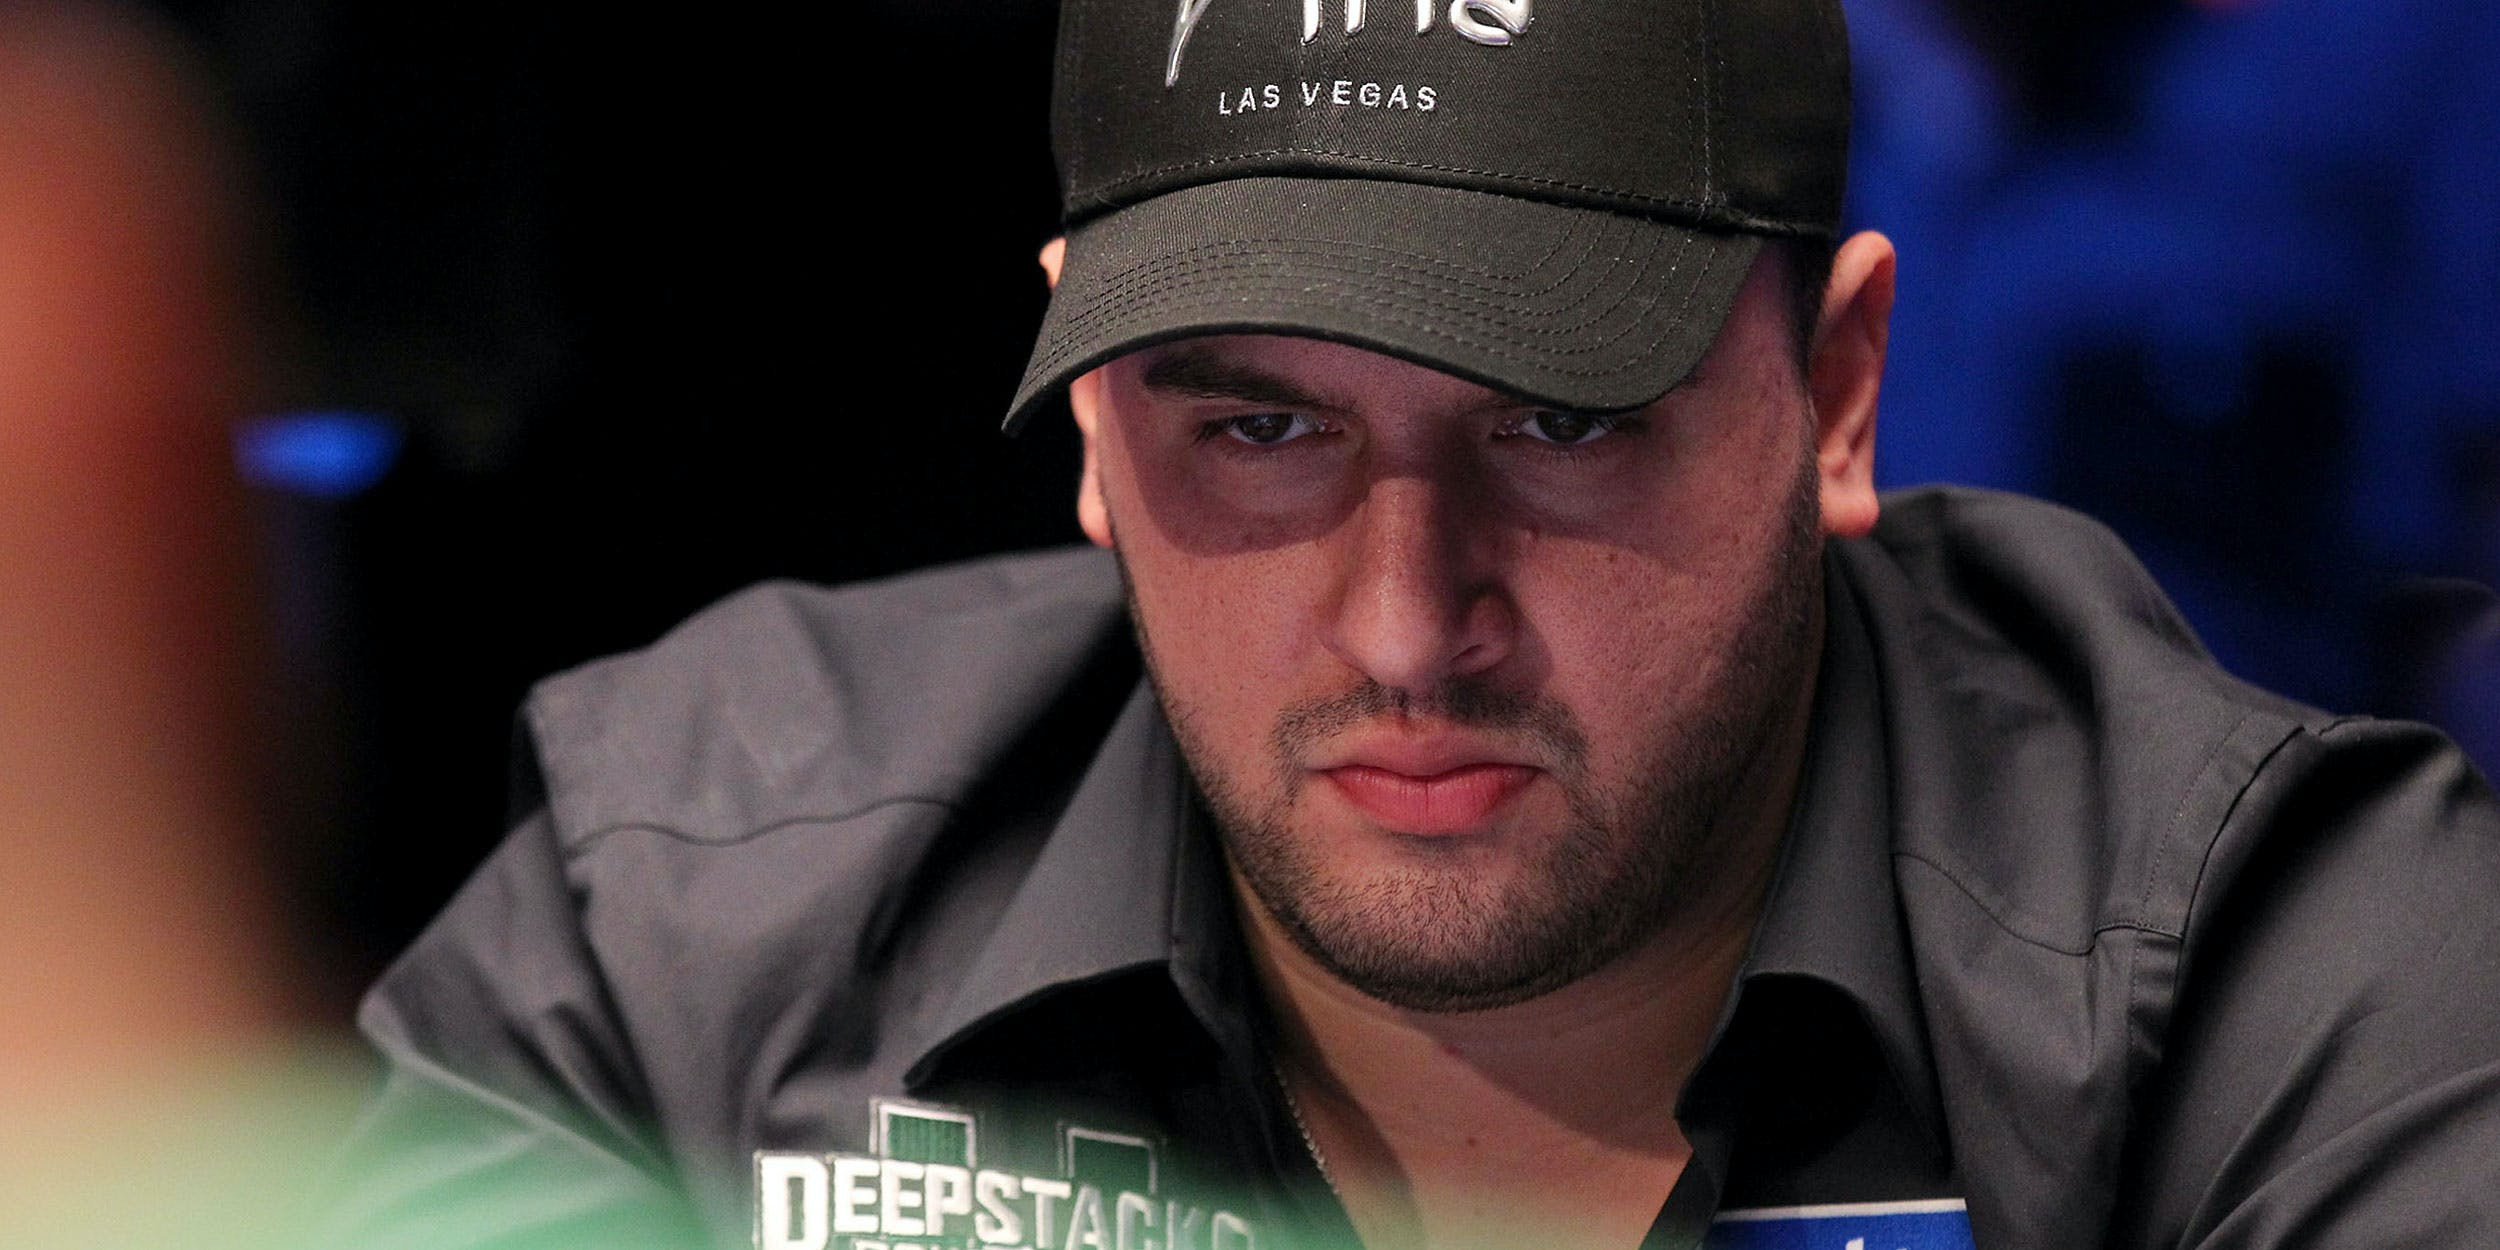 LAS VEGAS, NV - DECEMBER 18: Michael Mizrachi competes at the third Main Event on the final day of the Epic Poker League Inaugural Season at the Palms Casino Resort on December 18, 2011 in Las Vegas, Nevada. The World Series of Poker (WSOP) recently pulled his cannabis endorsement mid-tournament.